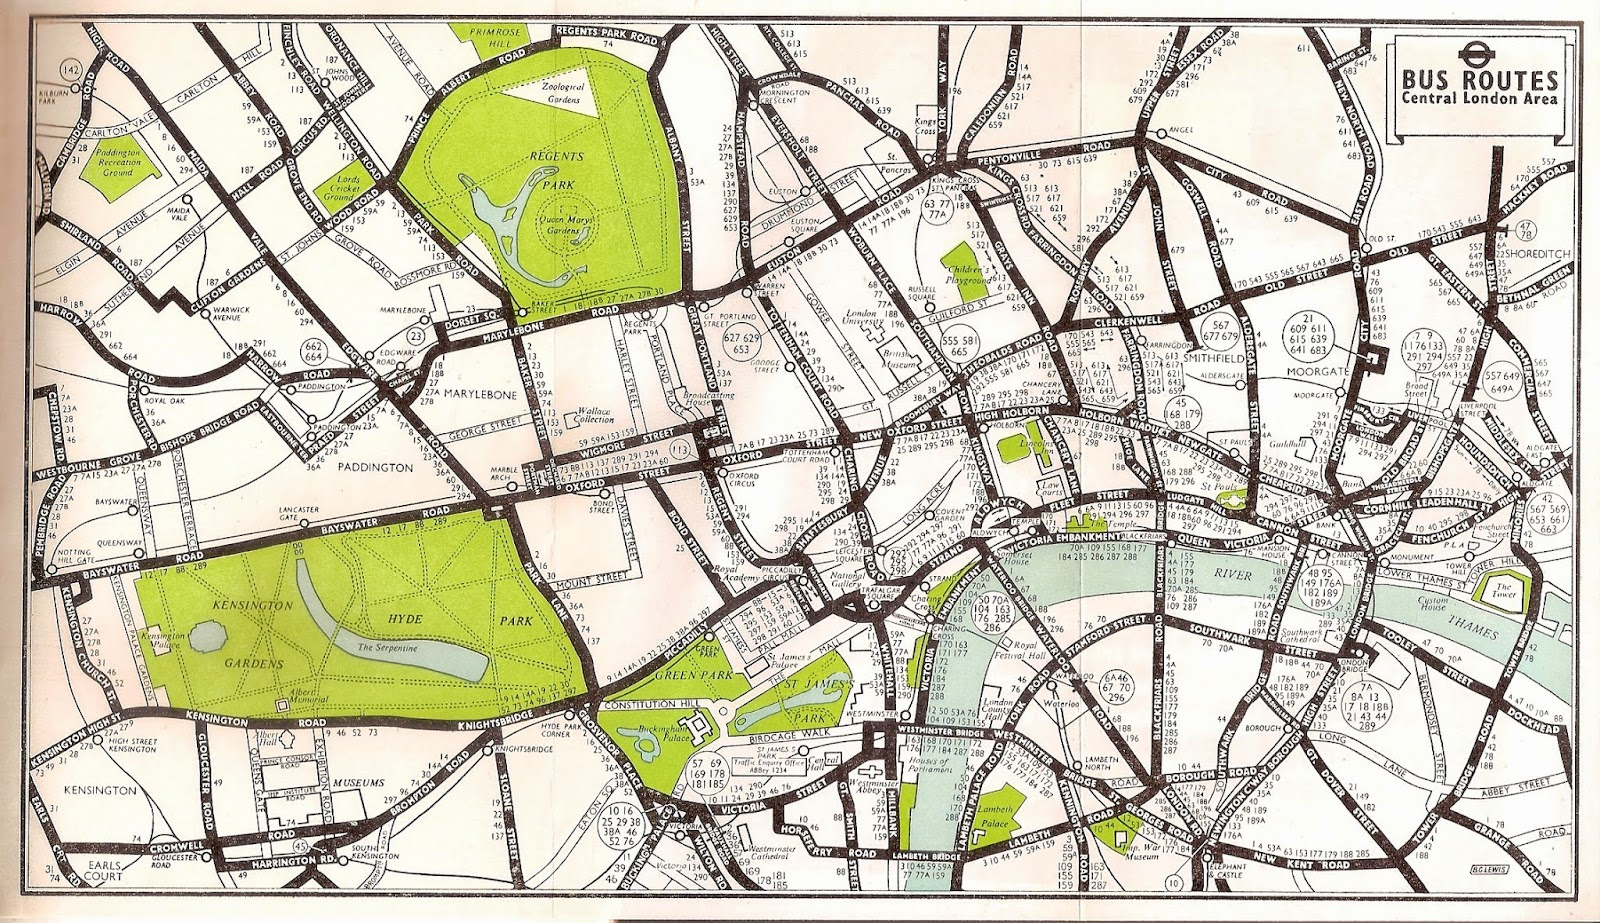 mappa moodi moo de fl neurs map collection – Map of Central London Areas